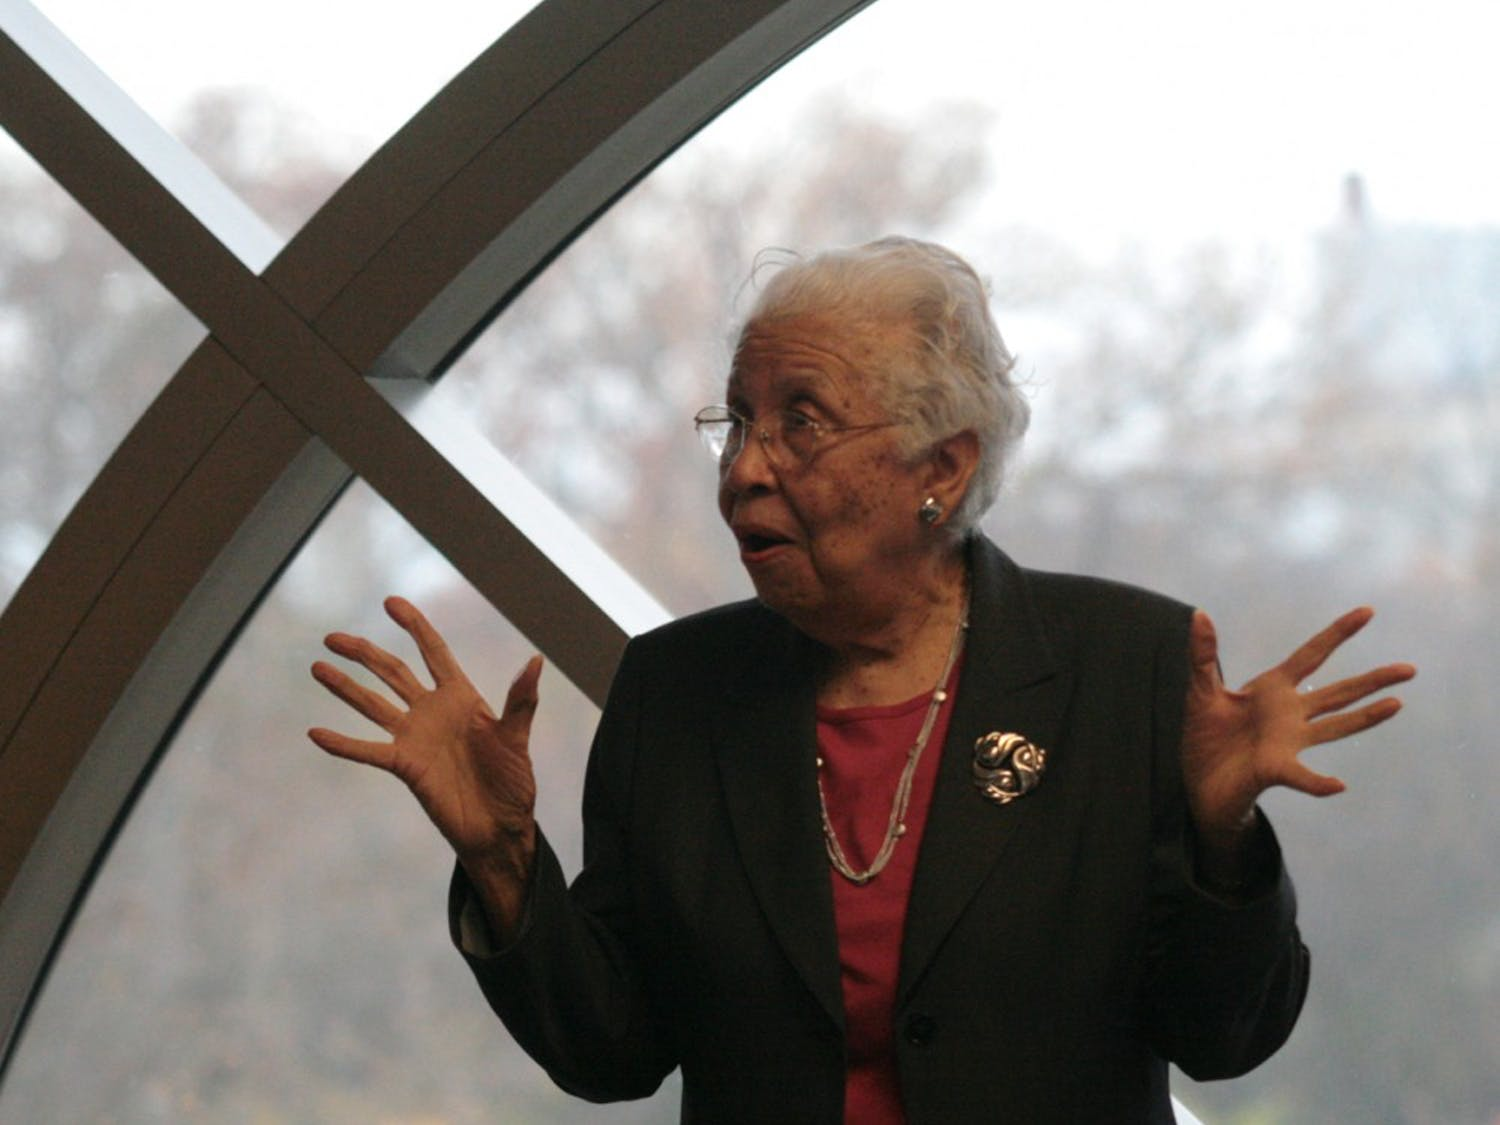 Hortense McClinton, the first black faculty member at the University,  spoke at the Parr Center for Ethics' Lunch and Learn program in the Tate-Turner-Kuralt Building on Tuesday at noon. McClinton was hired in 1966 as a professor in the UNC School of Social Work.